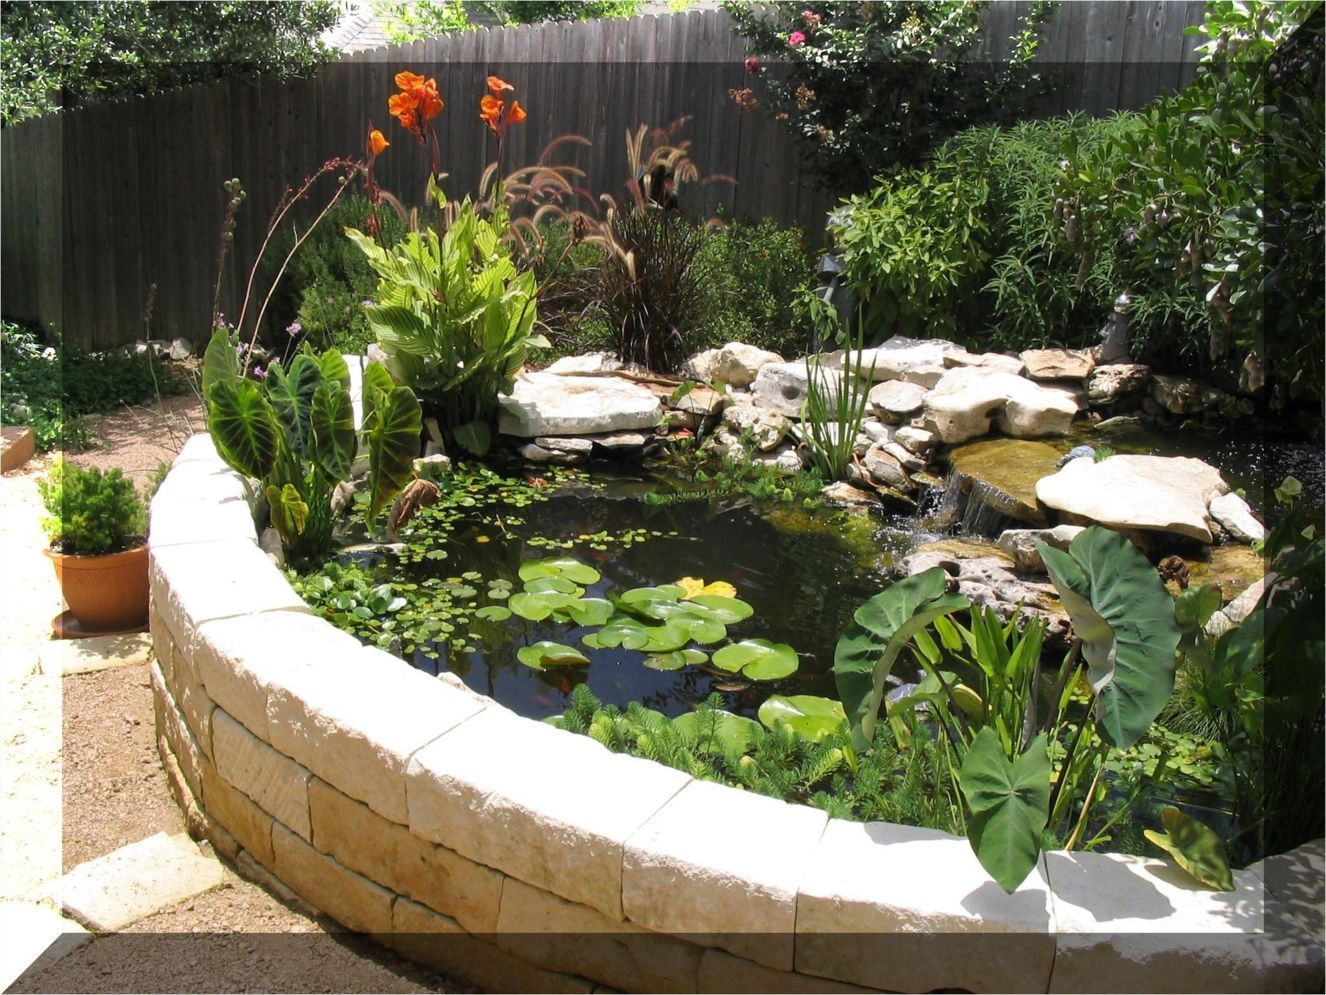 Stunning 32 Small Fish Pond Designs Look Perfect For Improving Tiny Garden Landscape Inspiring Sma Ponds Backyard Fish Pond Gardens Landscaping Water Feature Backyard fish farming ideas